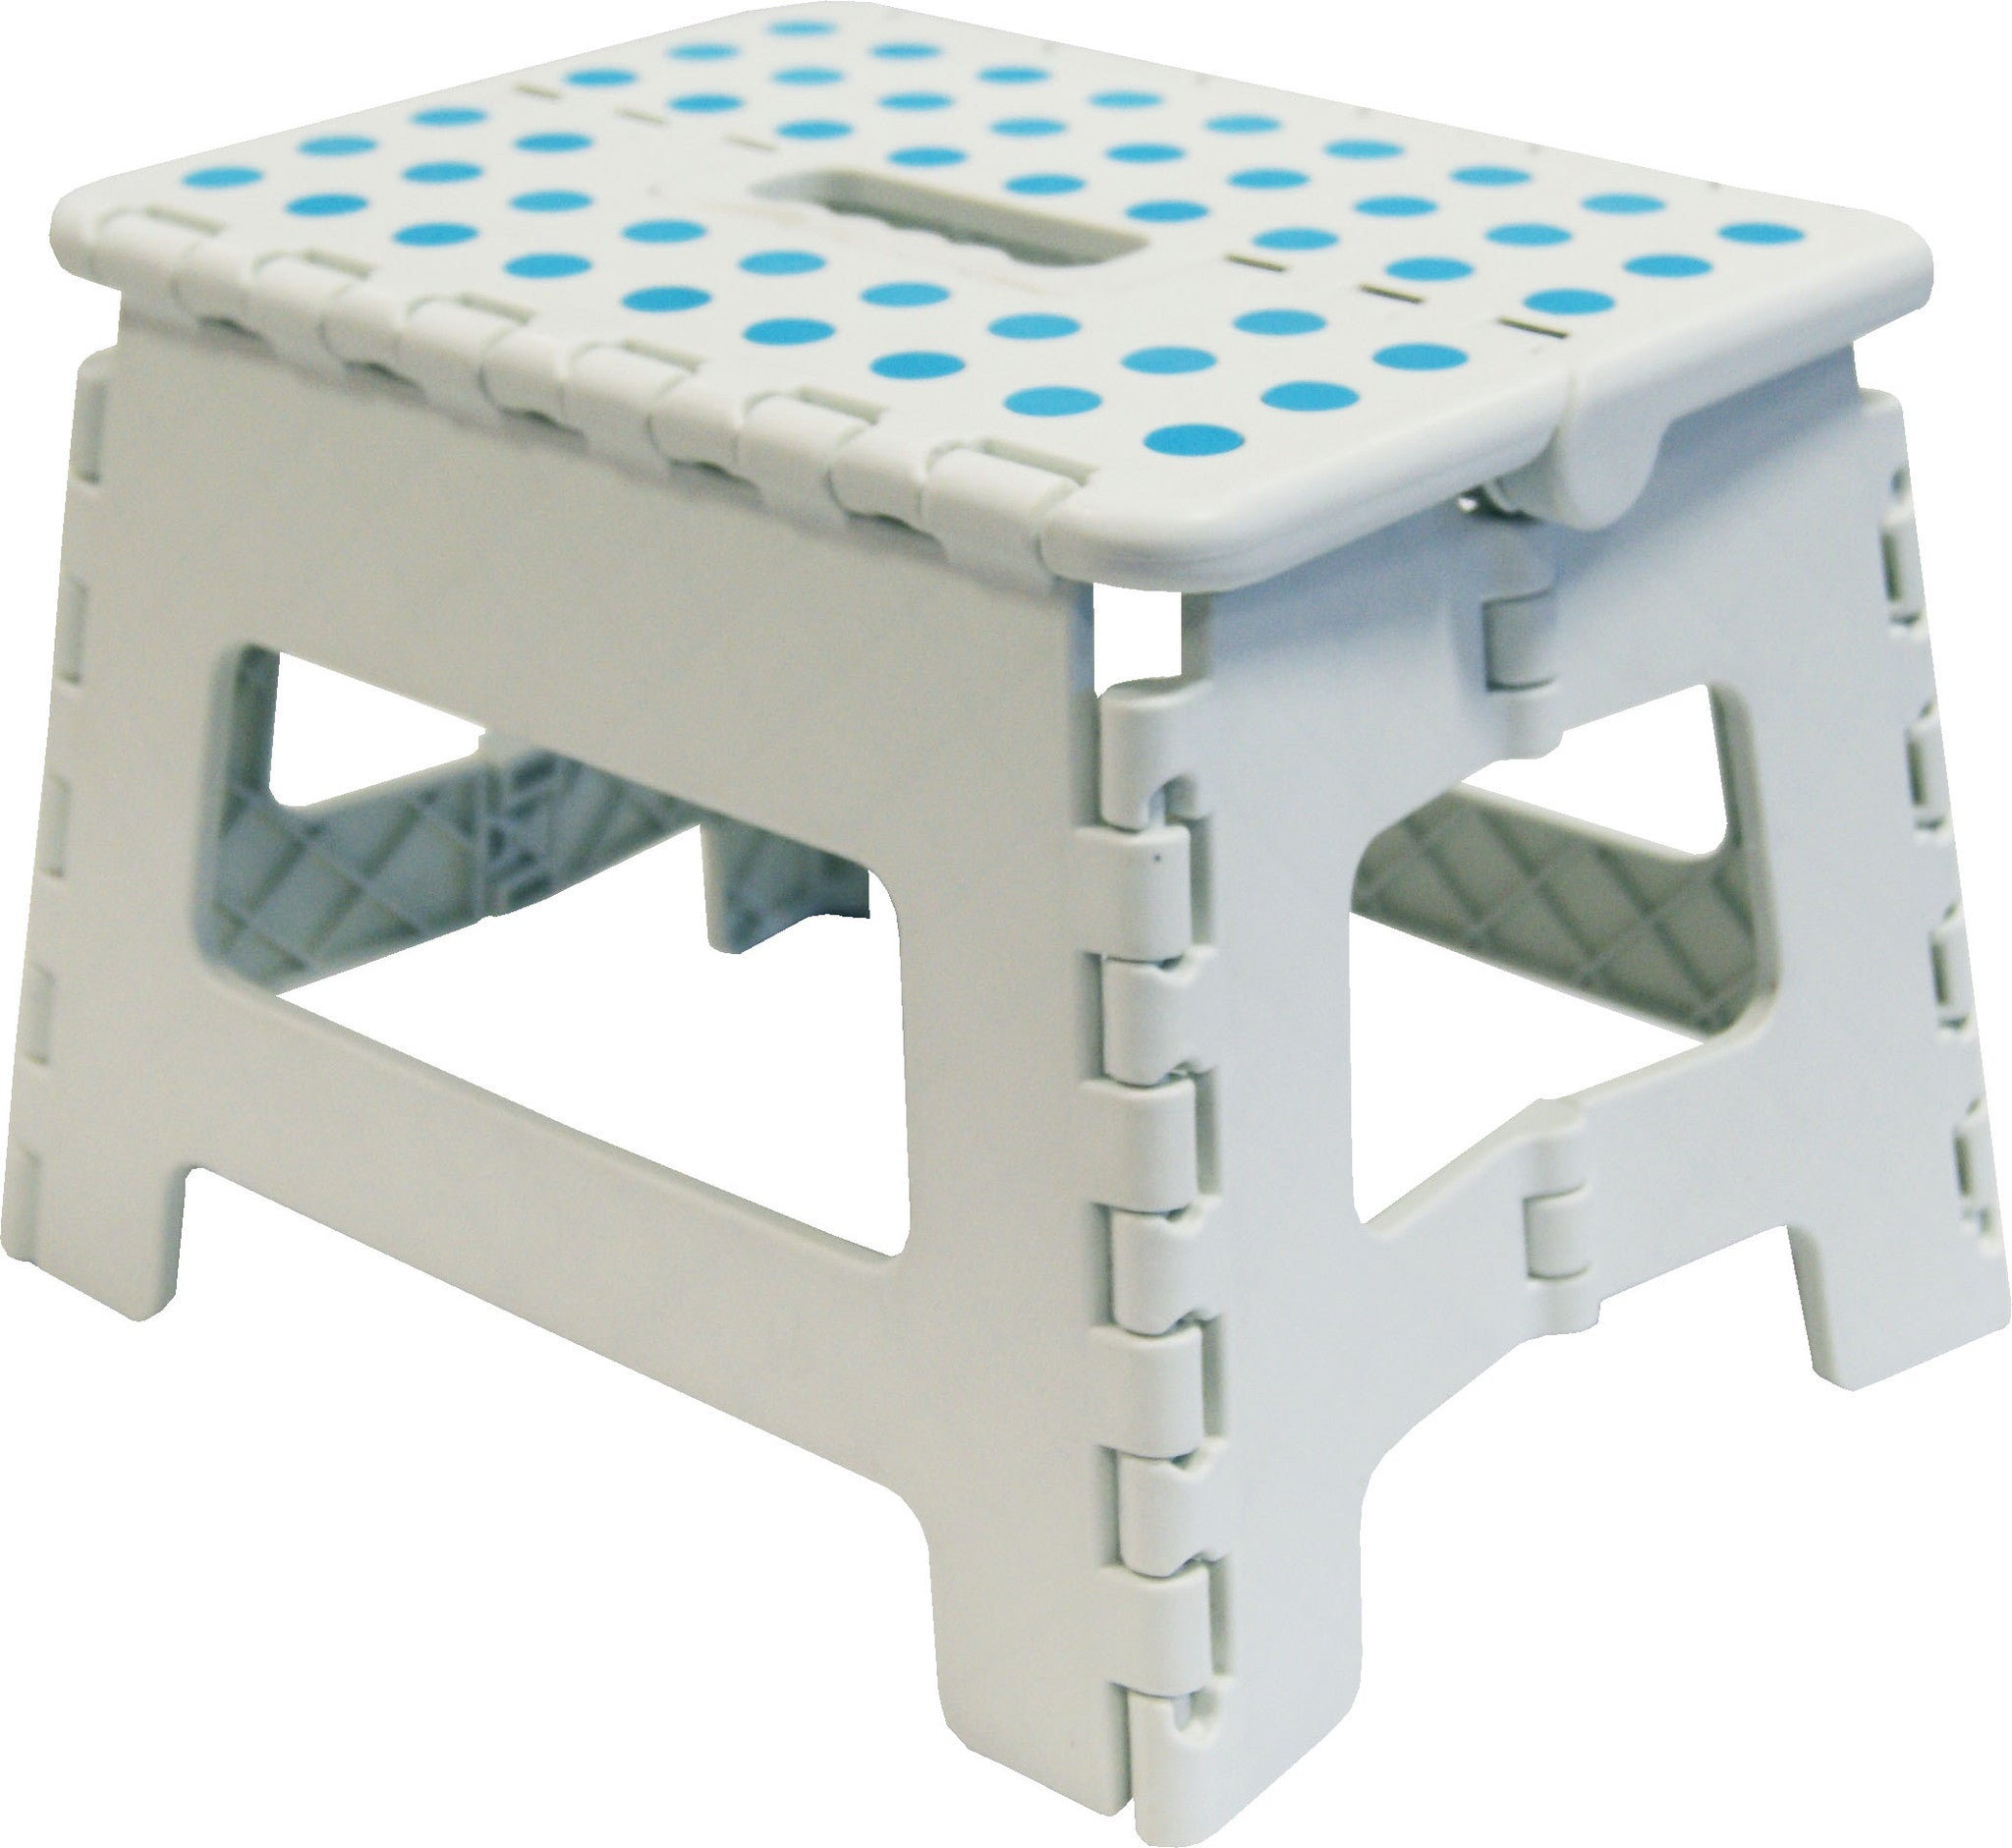 Wham Small Folding Step Stool-20140 - Homely Nigeria - 4